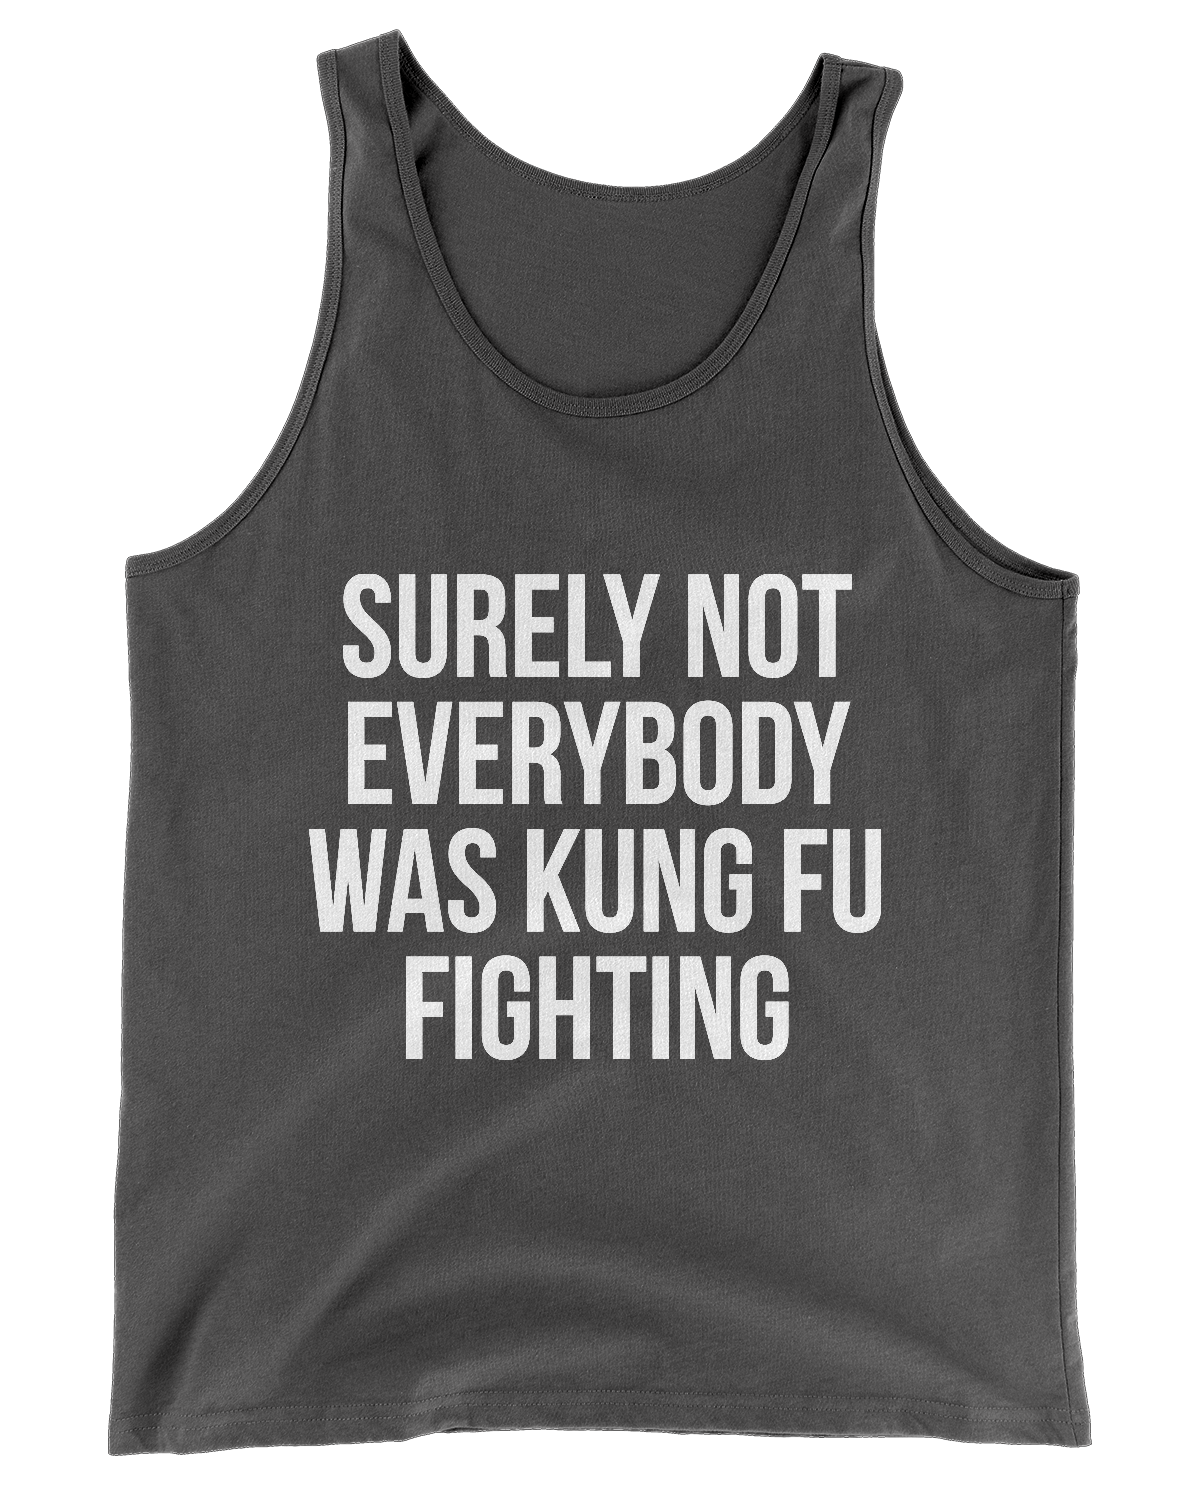 Surely Not Everyone Was Kung Fu Fighting Tank